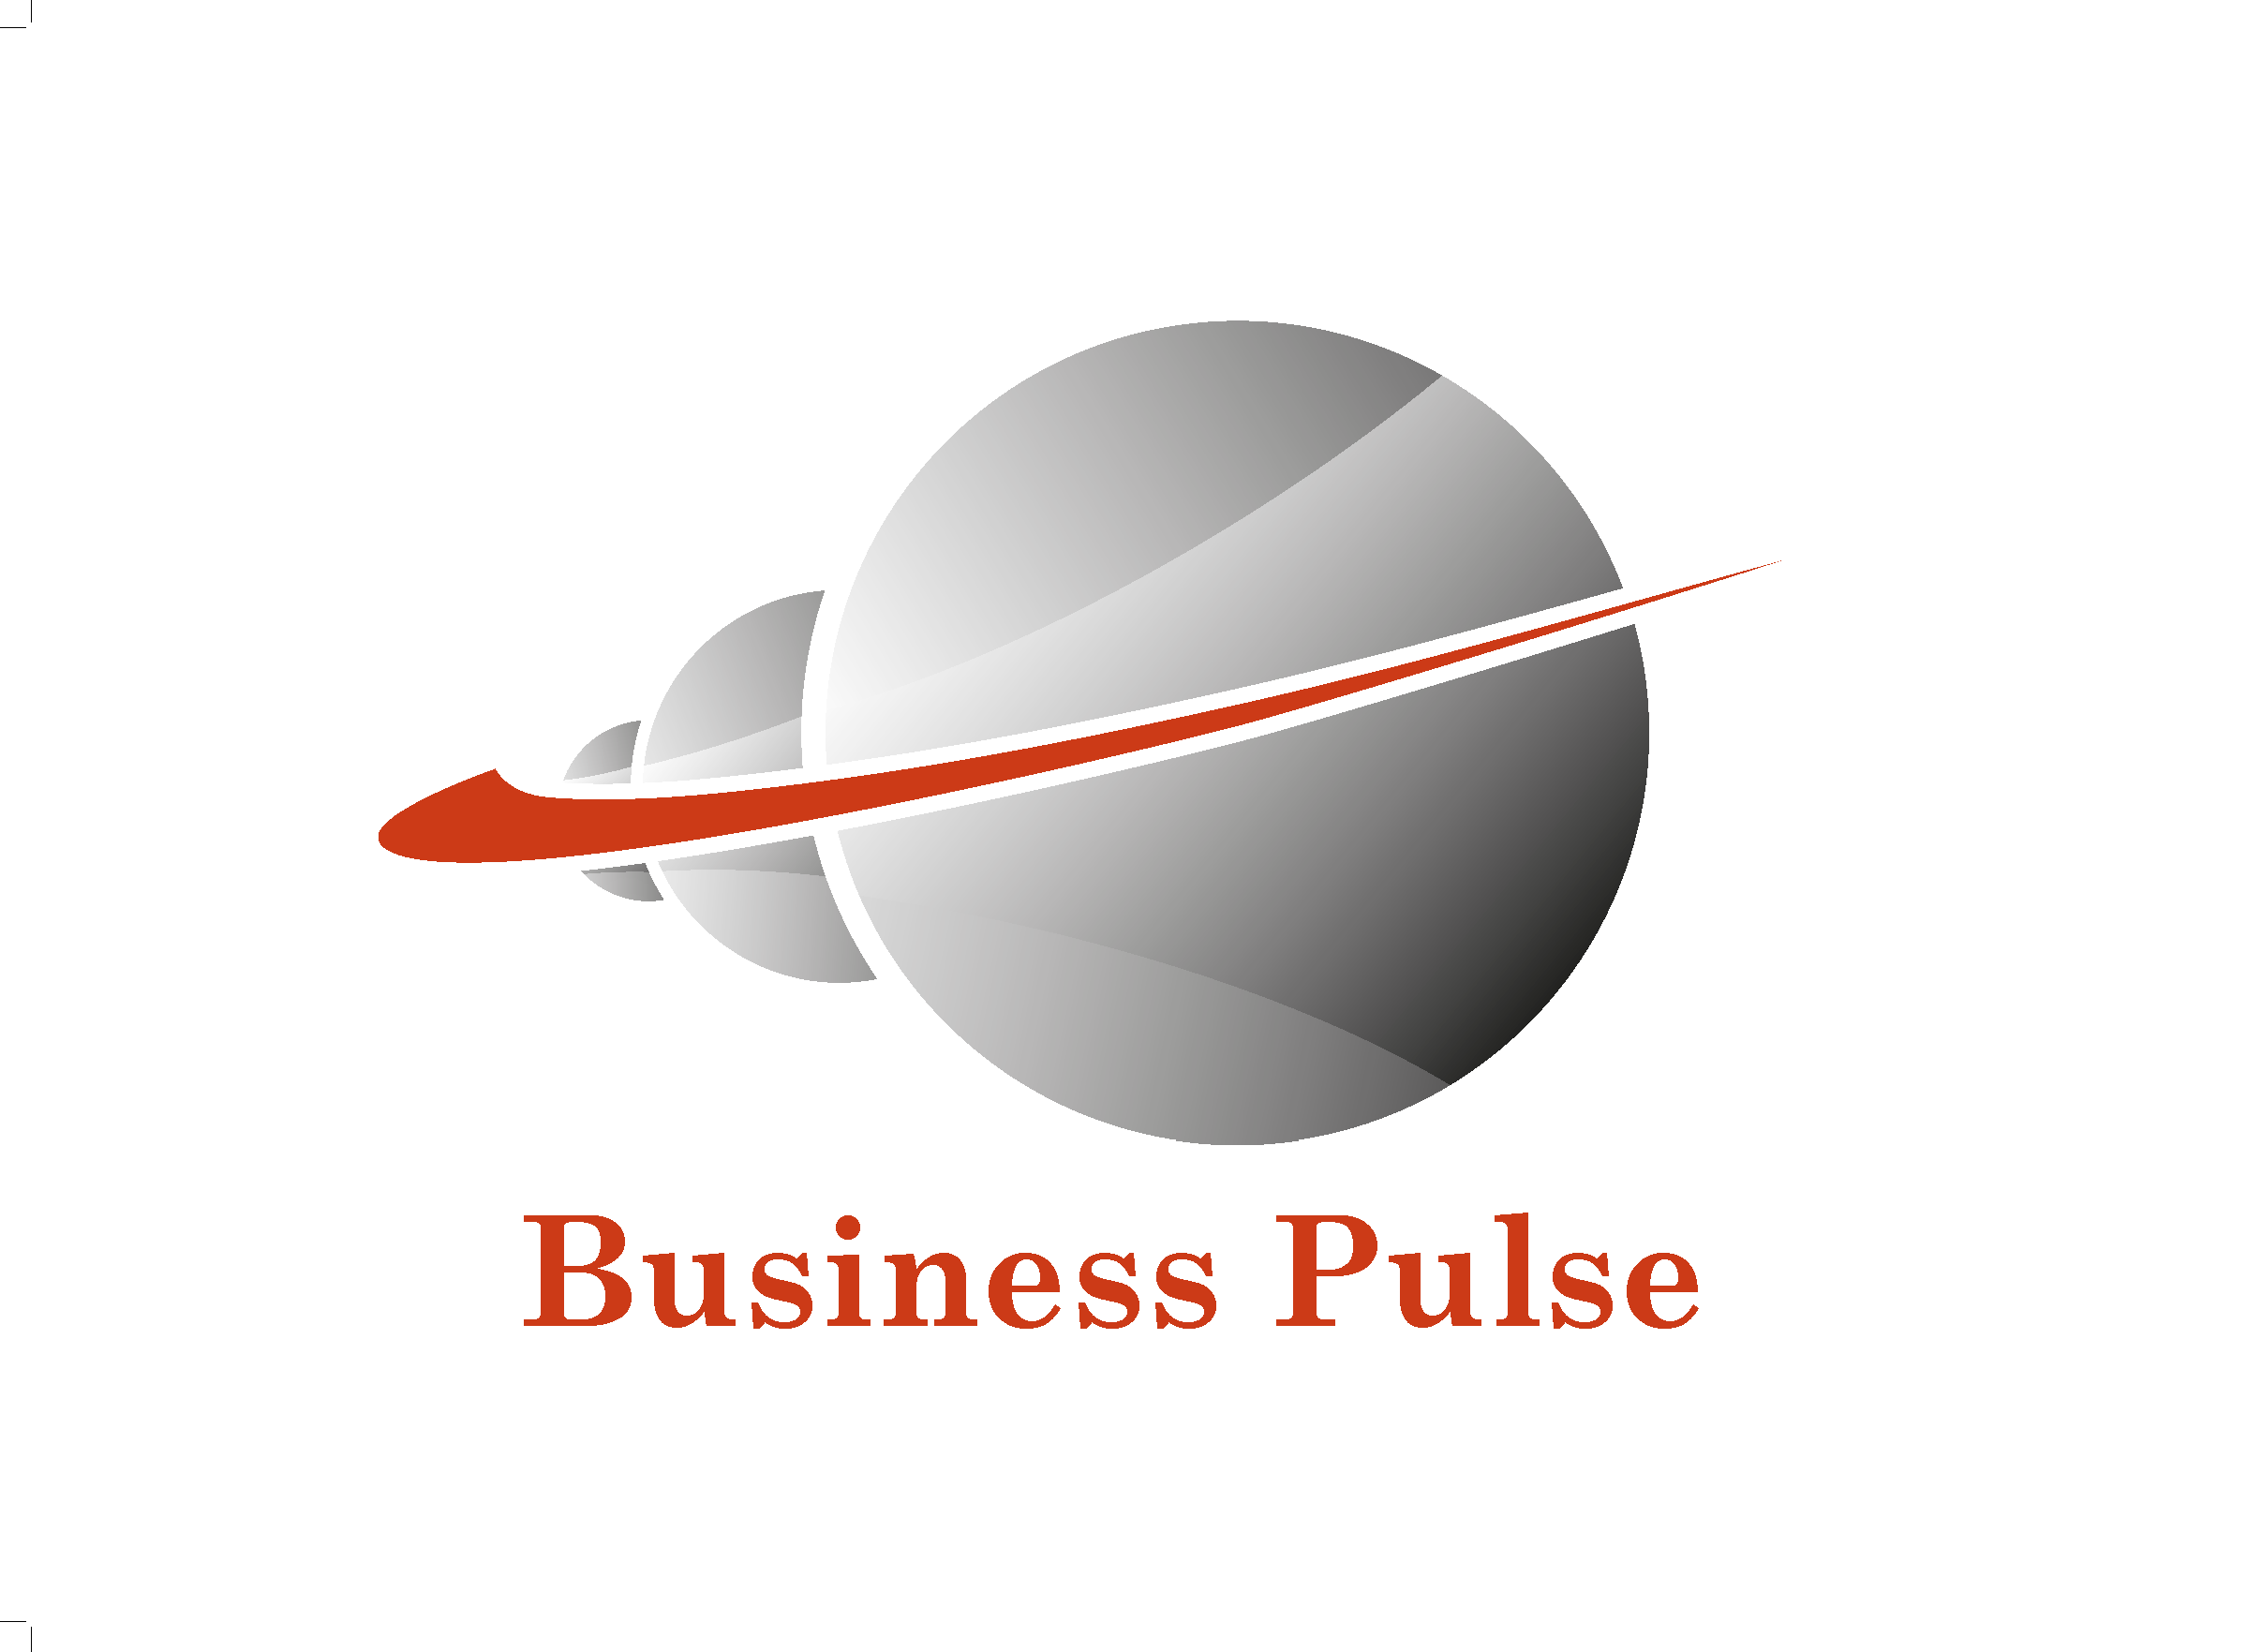 Business Pulse